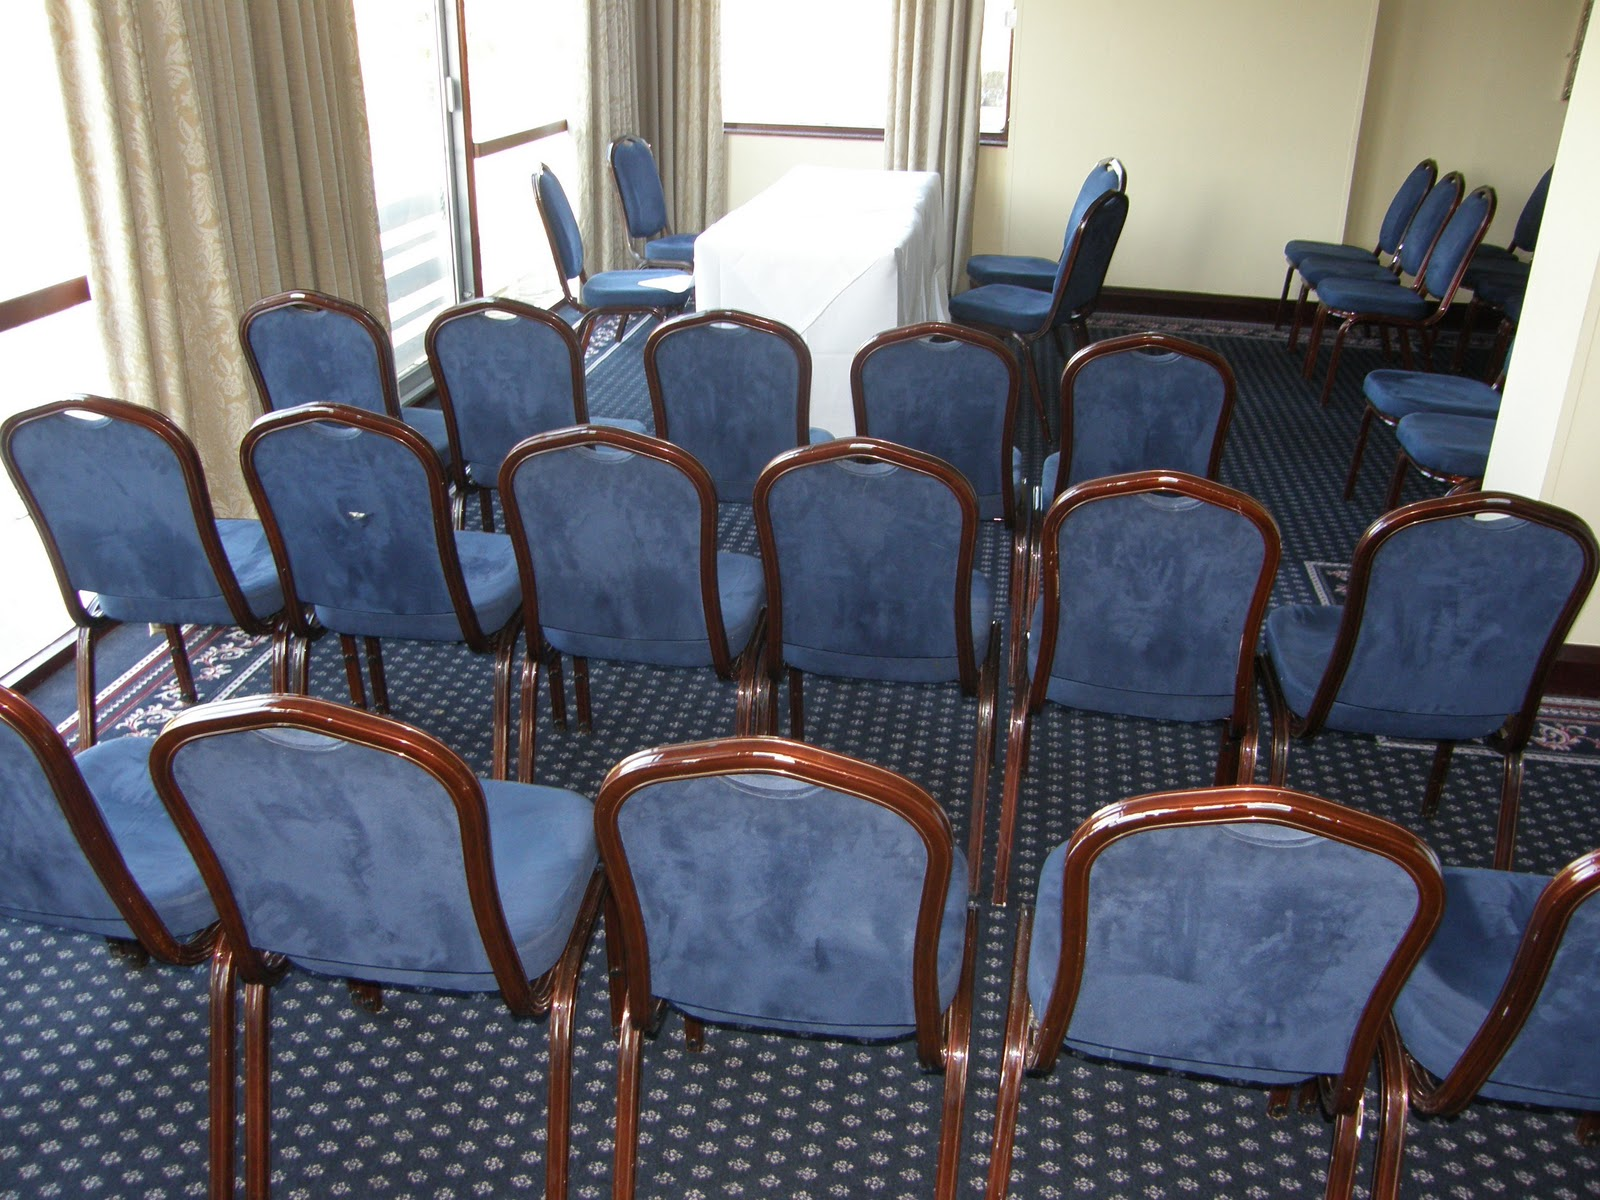 Wedding Chair Covers Devon Patio Cushions Lowes All Angles And Venue Dressing Park Hotel